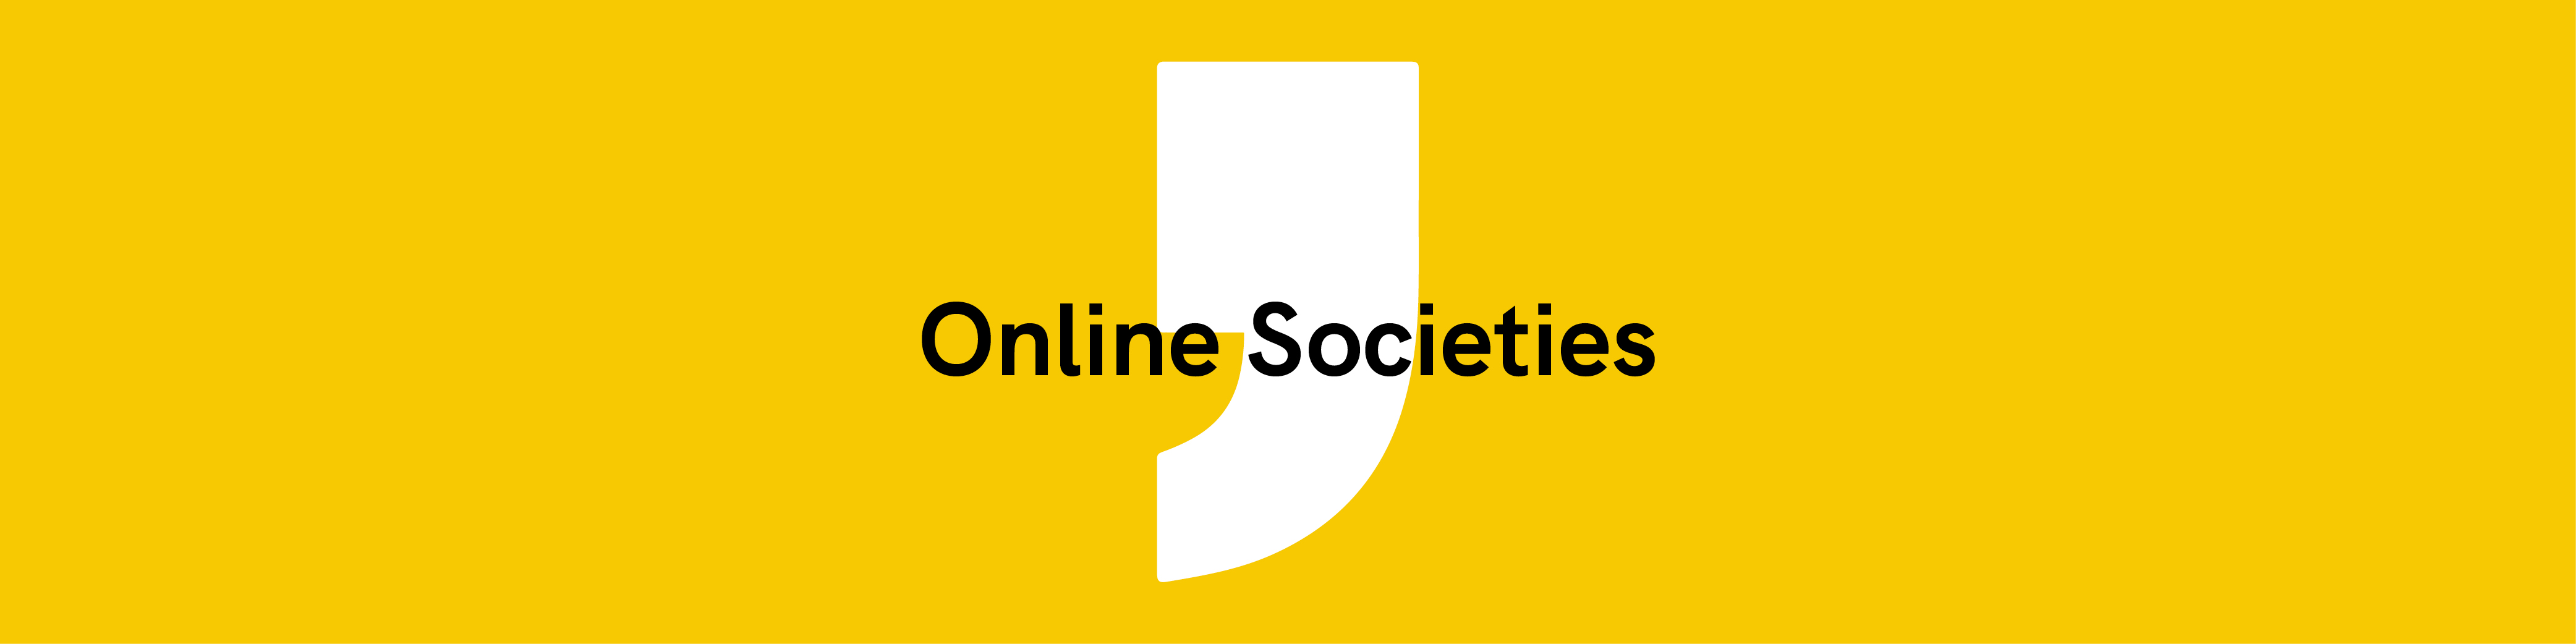 Online Societies